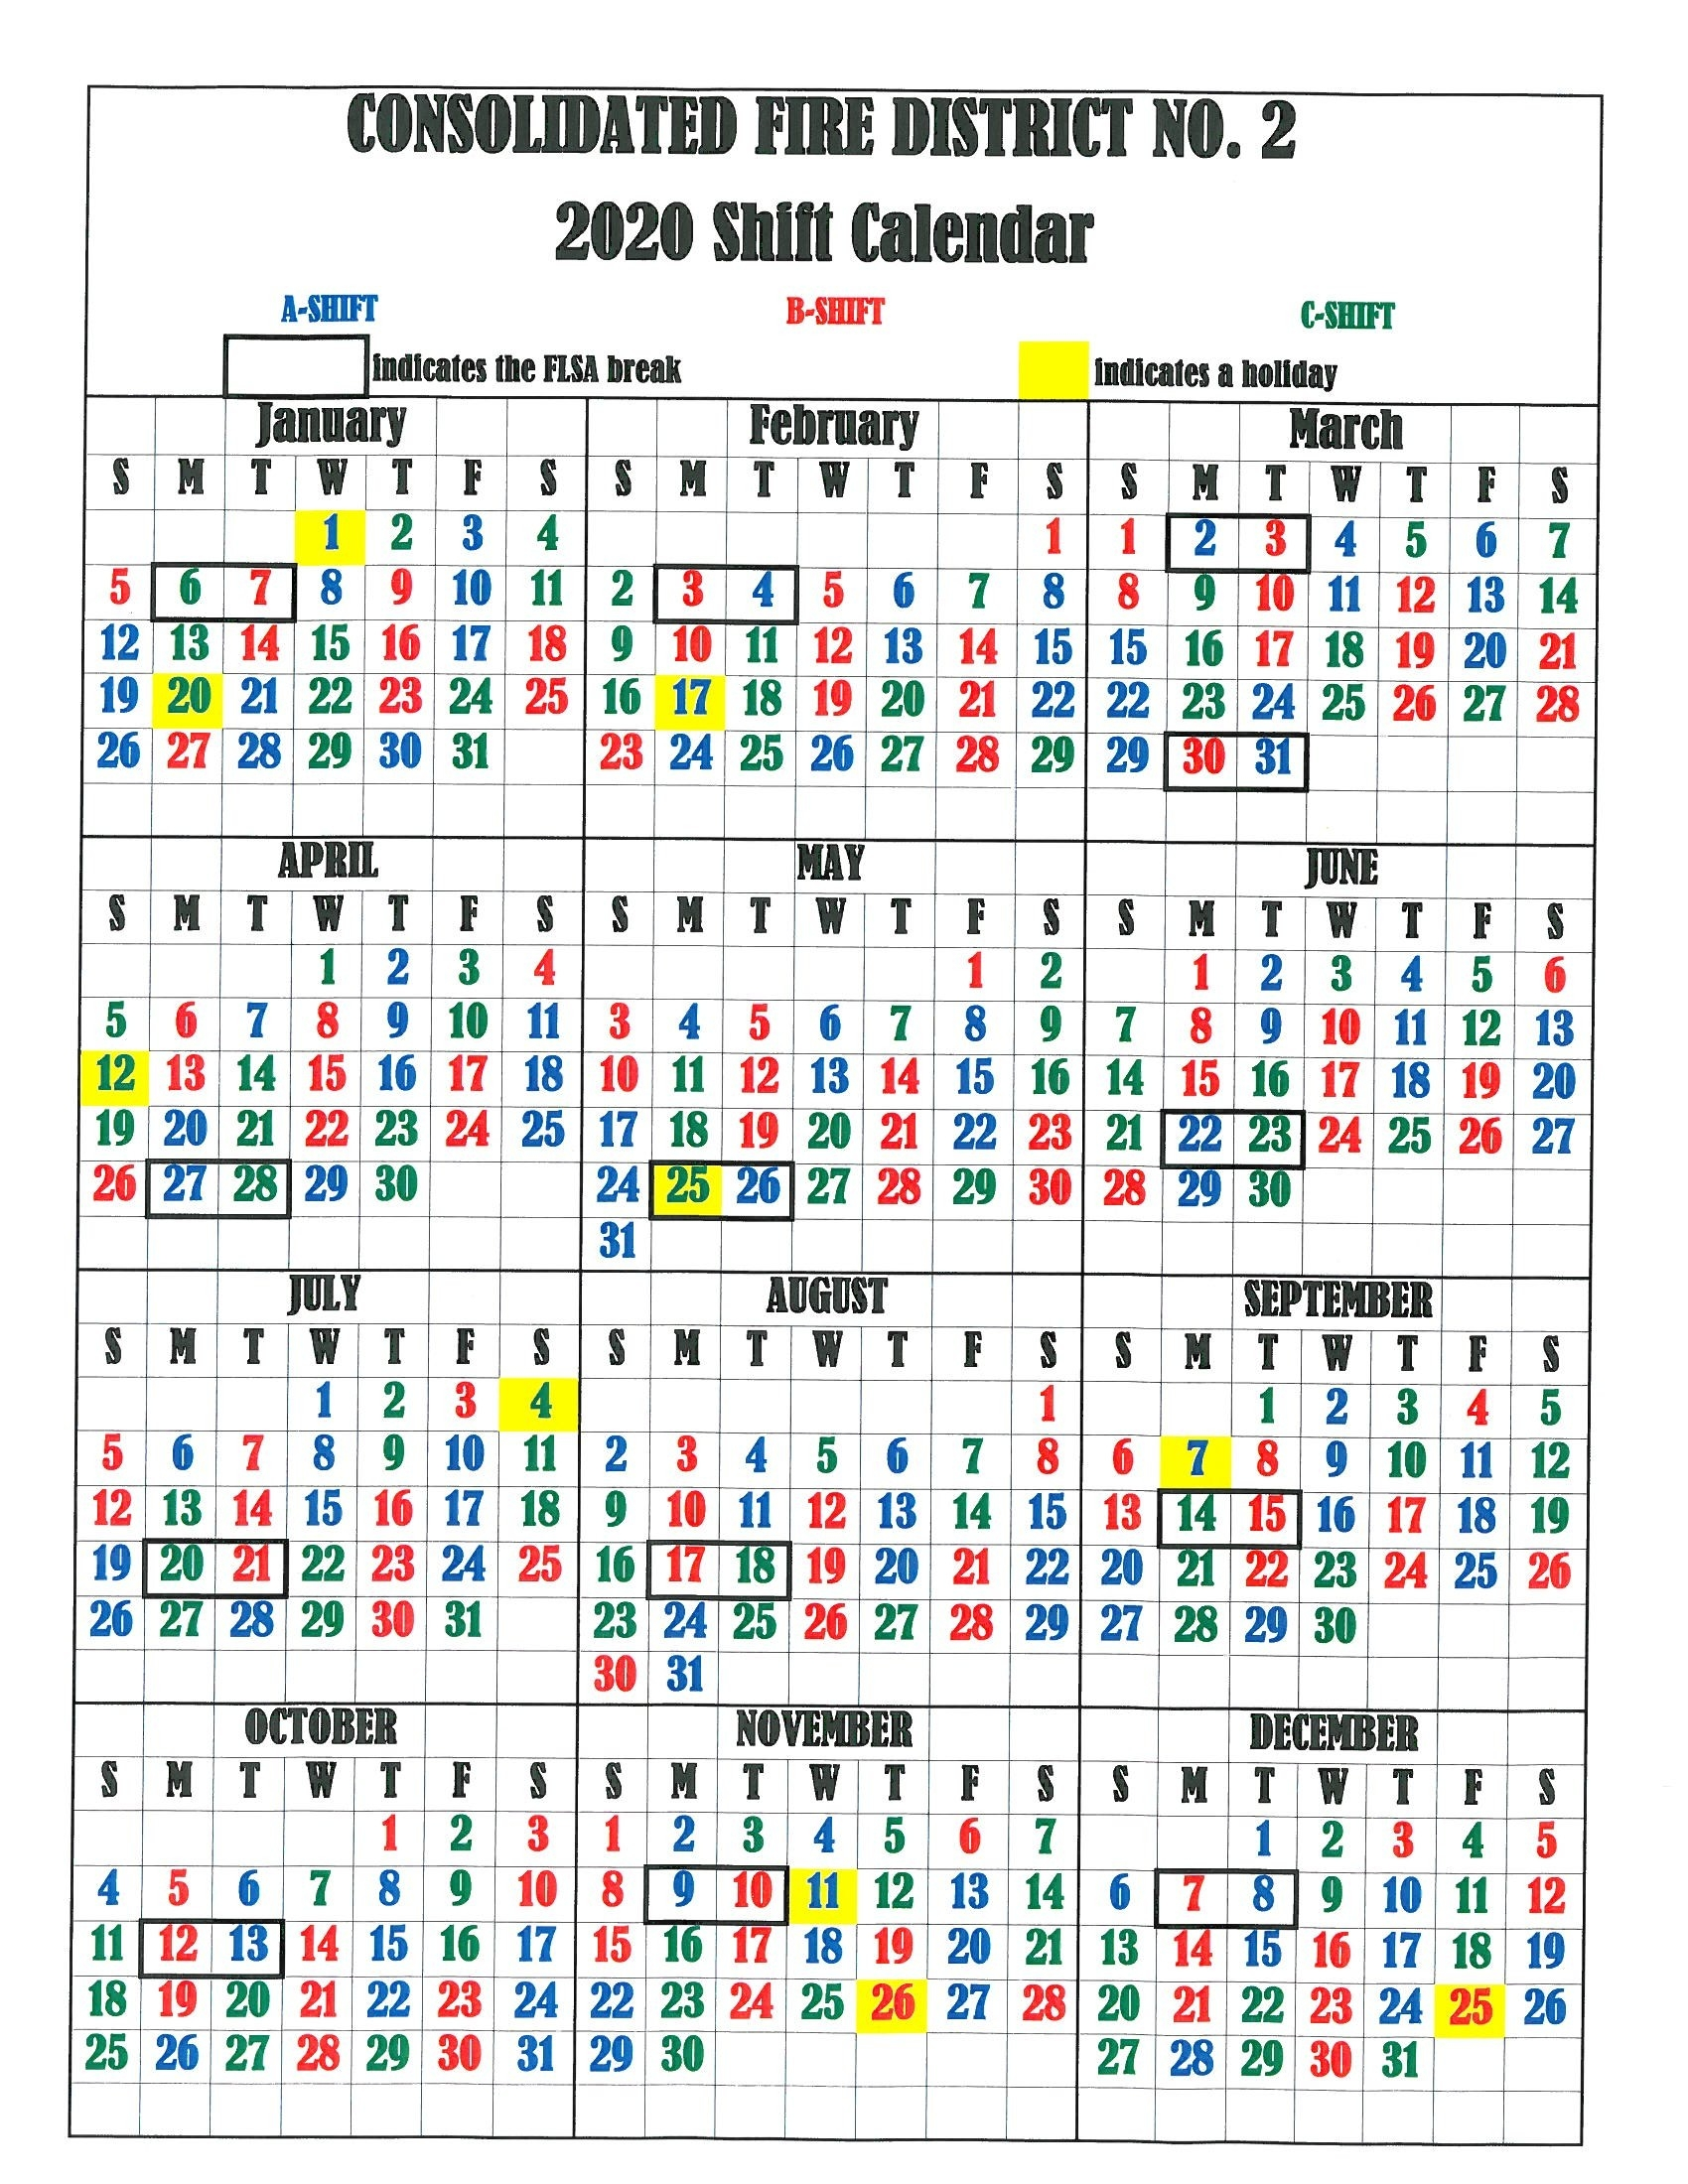 Cfd2 Shift Calendar - Consolidated Fire District #2  Fire Department Schedule 2020